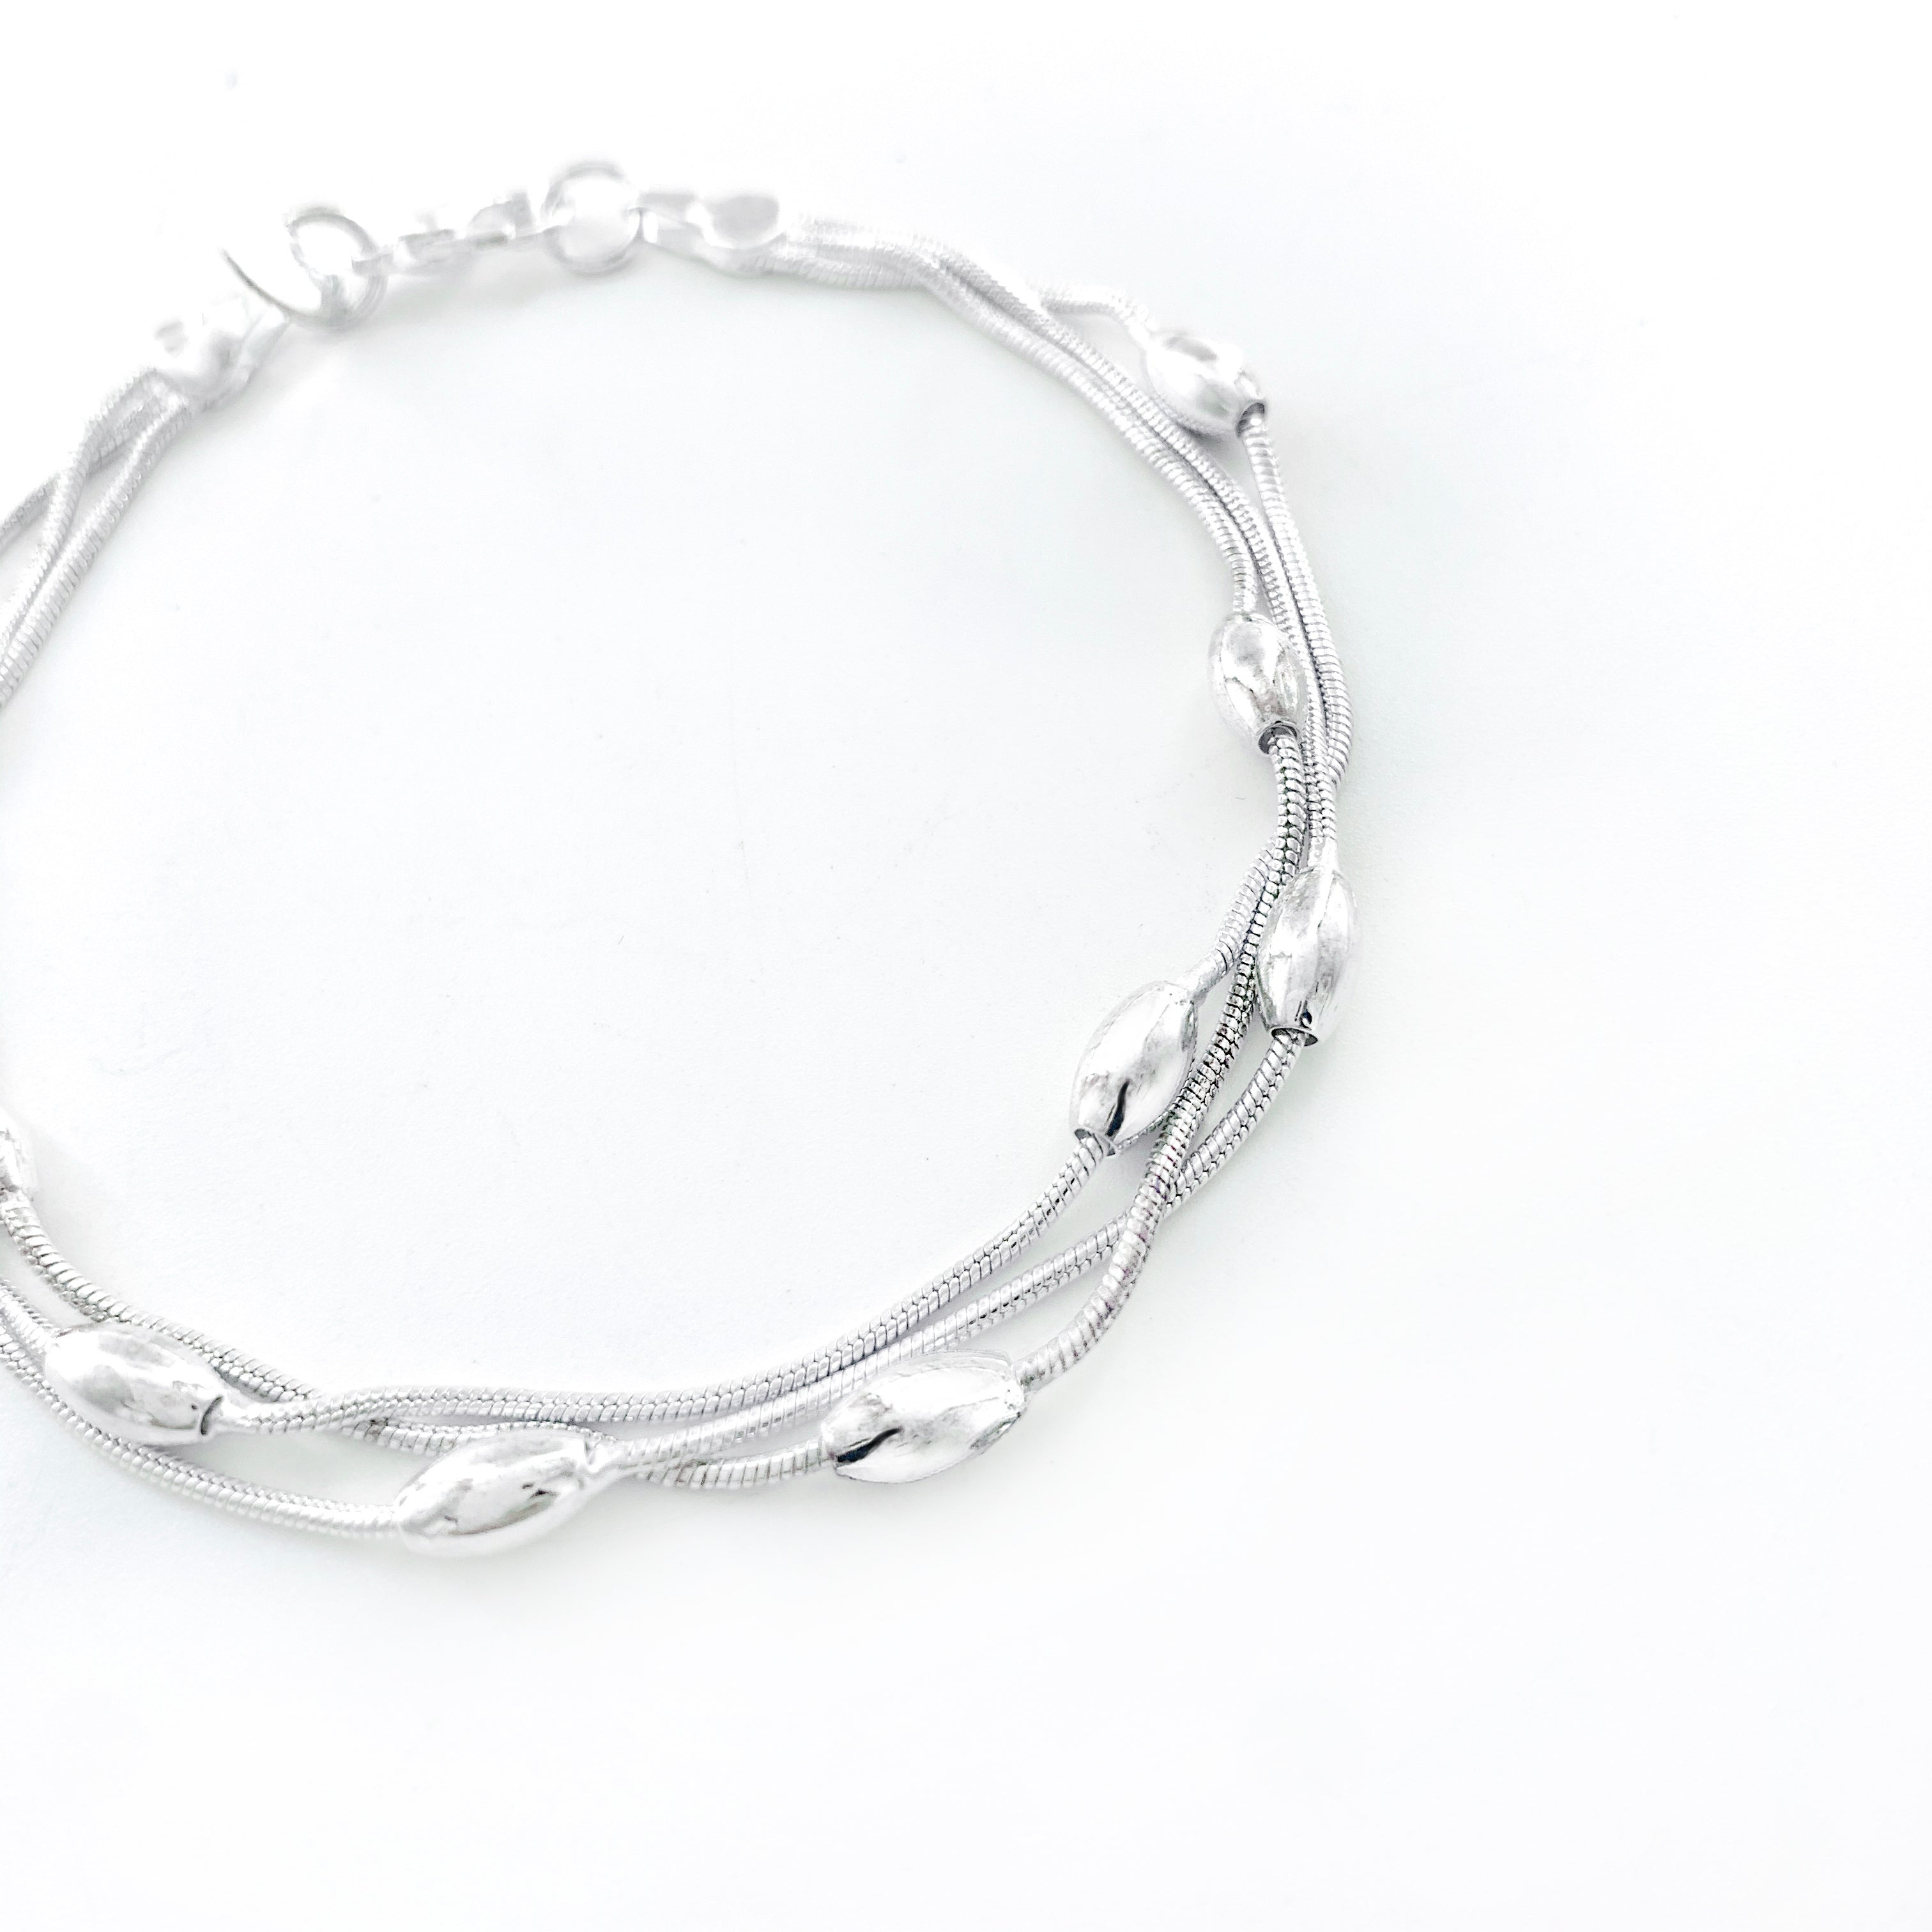 Silver bracelet with oval accents